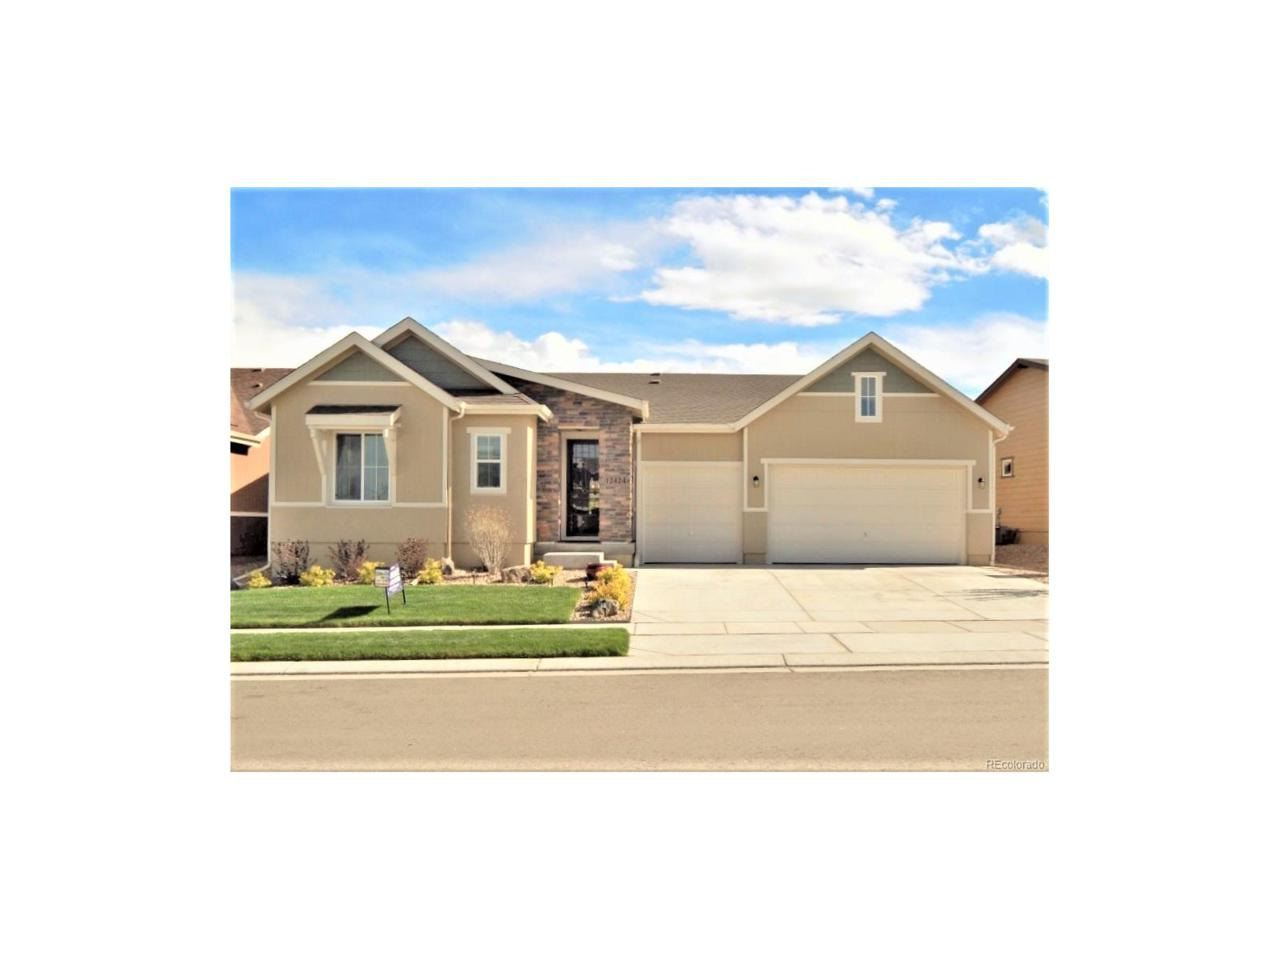 12424 Red Fox Way, Broomfield, CO 80021 (MLS #5486126) :: 8z Real Estate